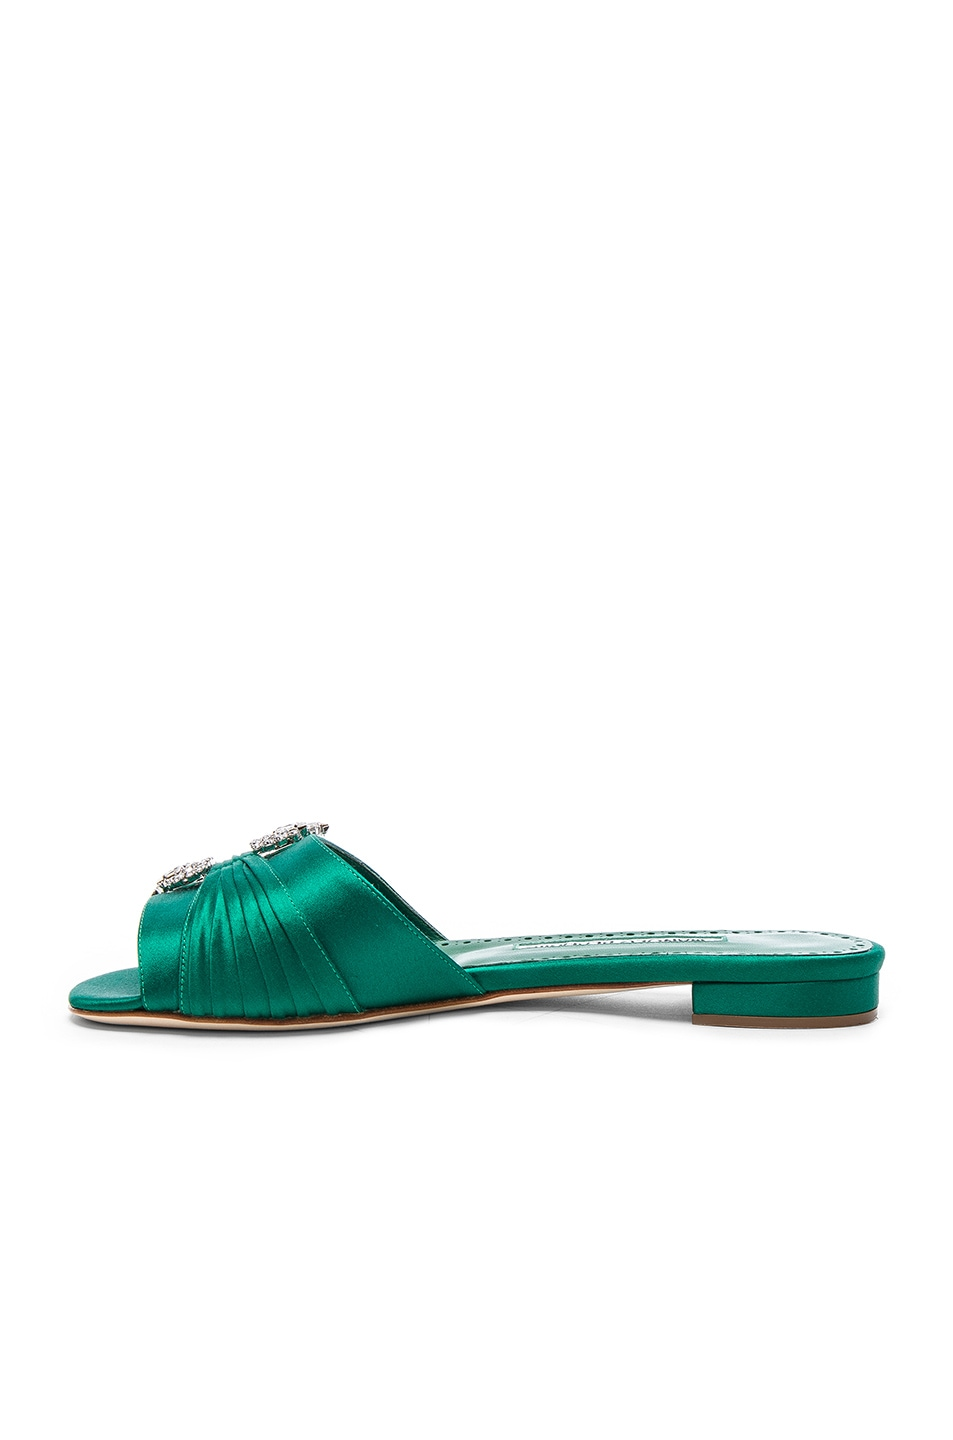 Image 5 of Manolo Blahnik Satin Pralina Slides in Green Satin